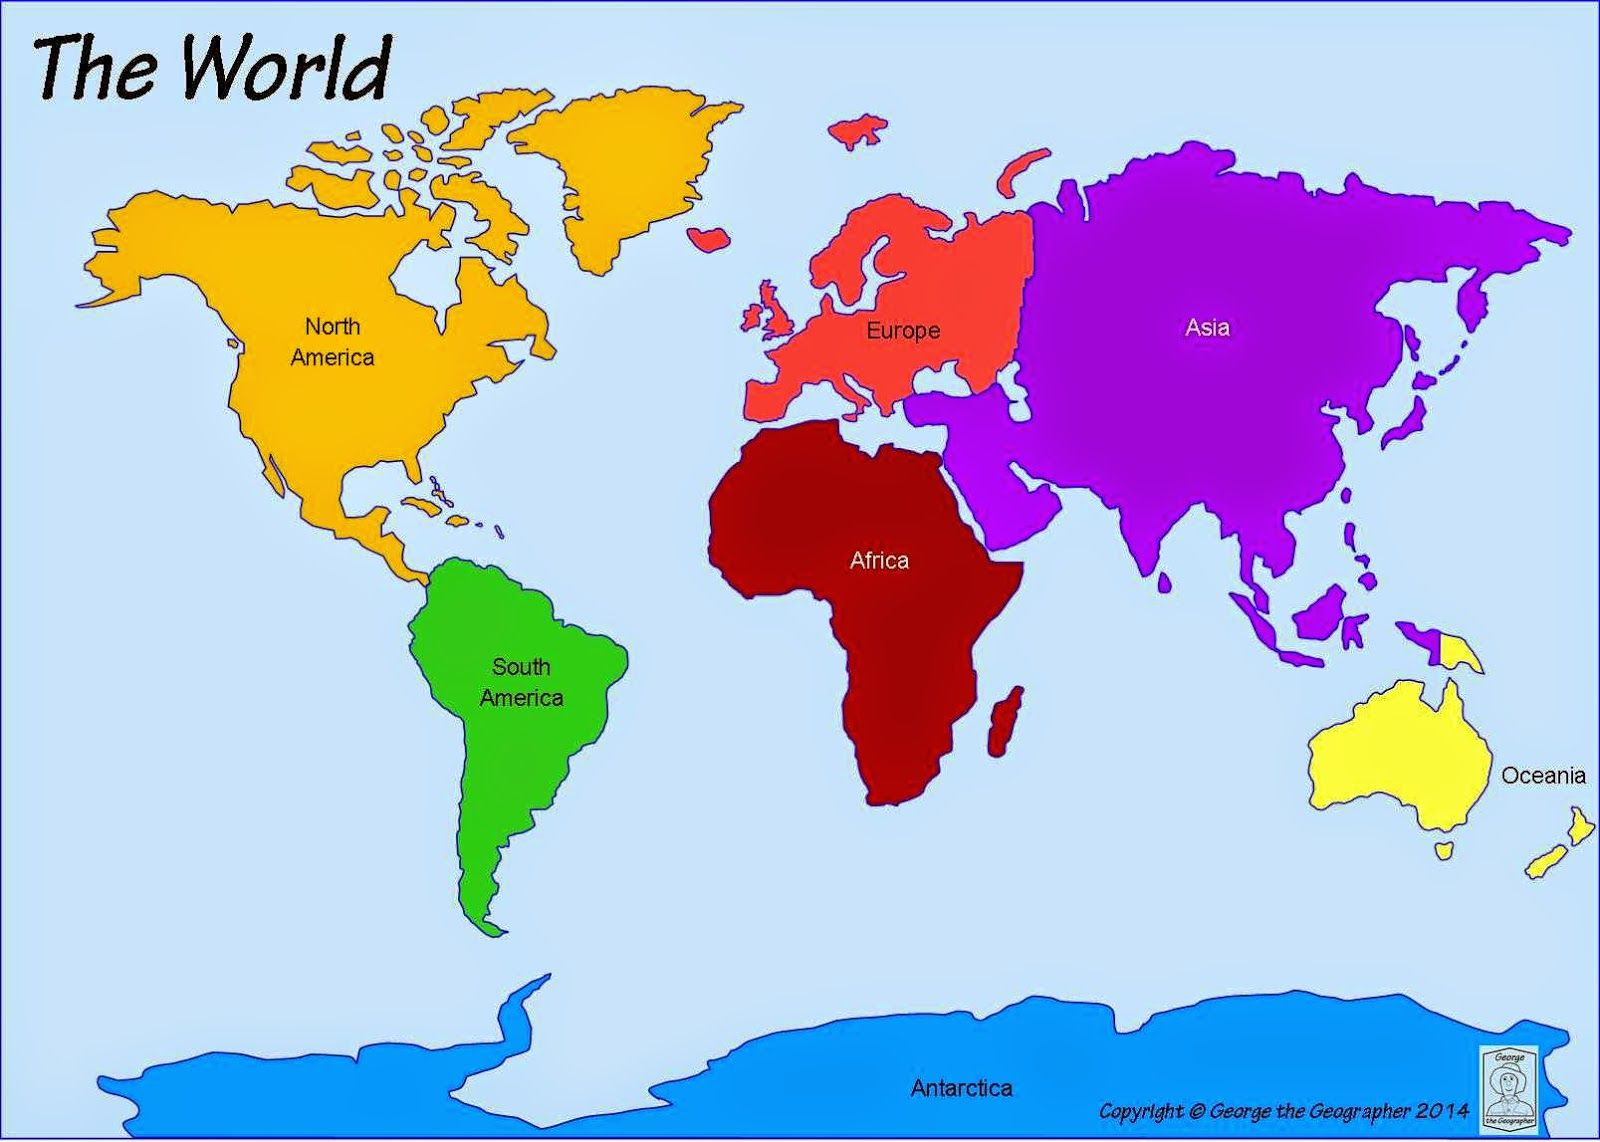 Printable World Map 7 Continents puter lab